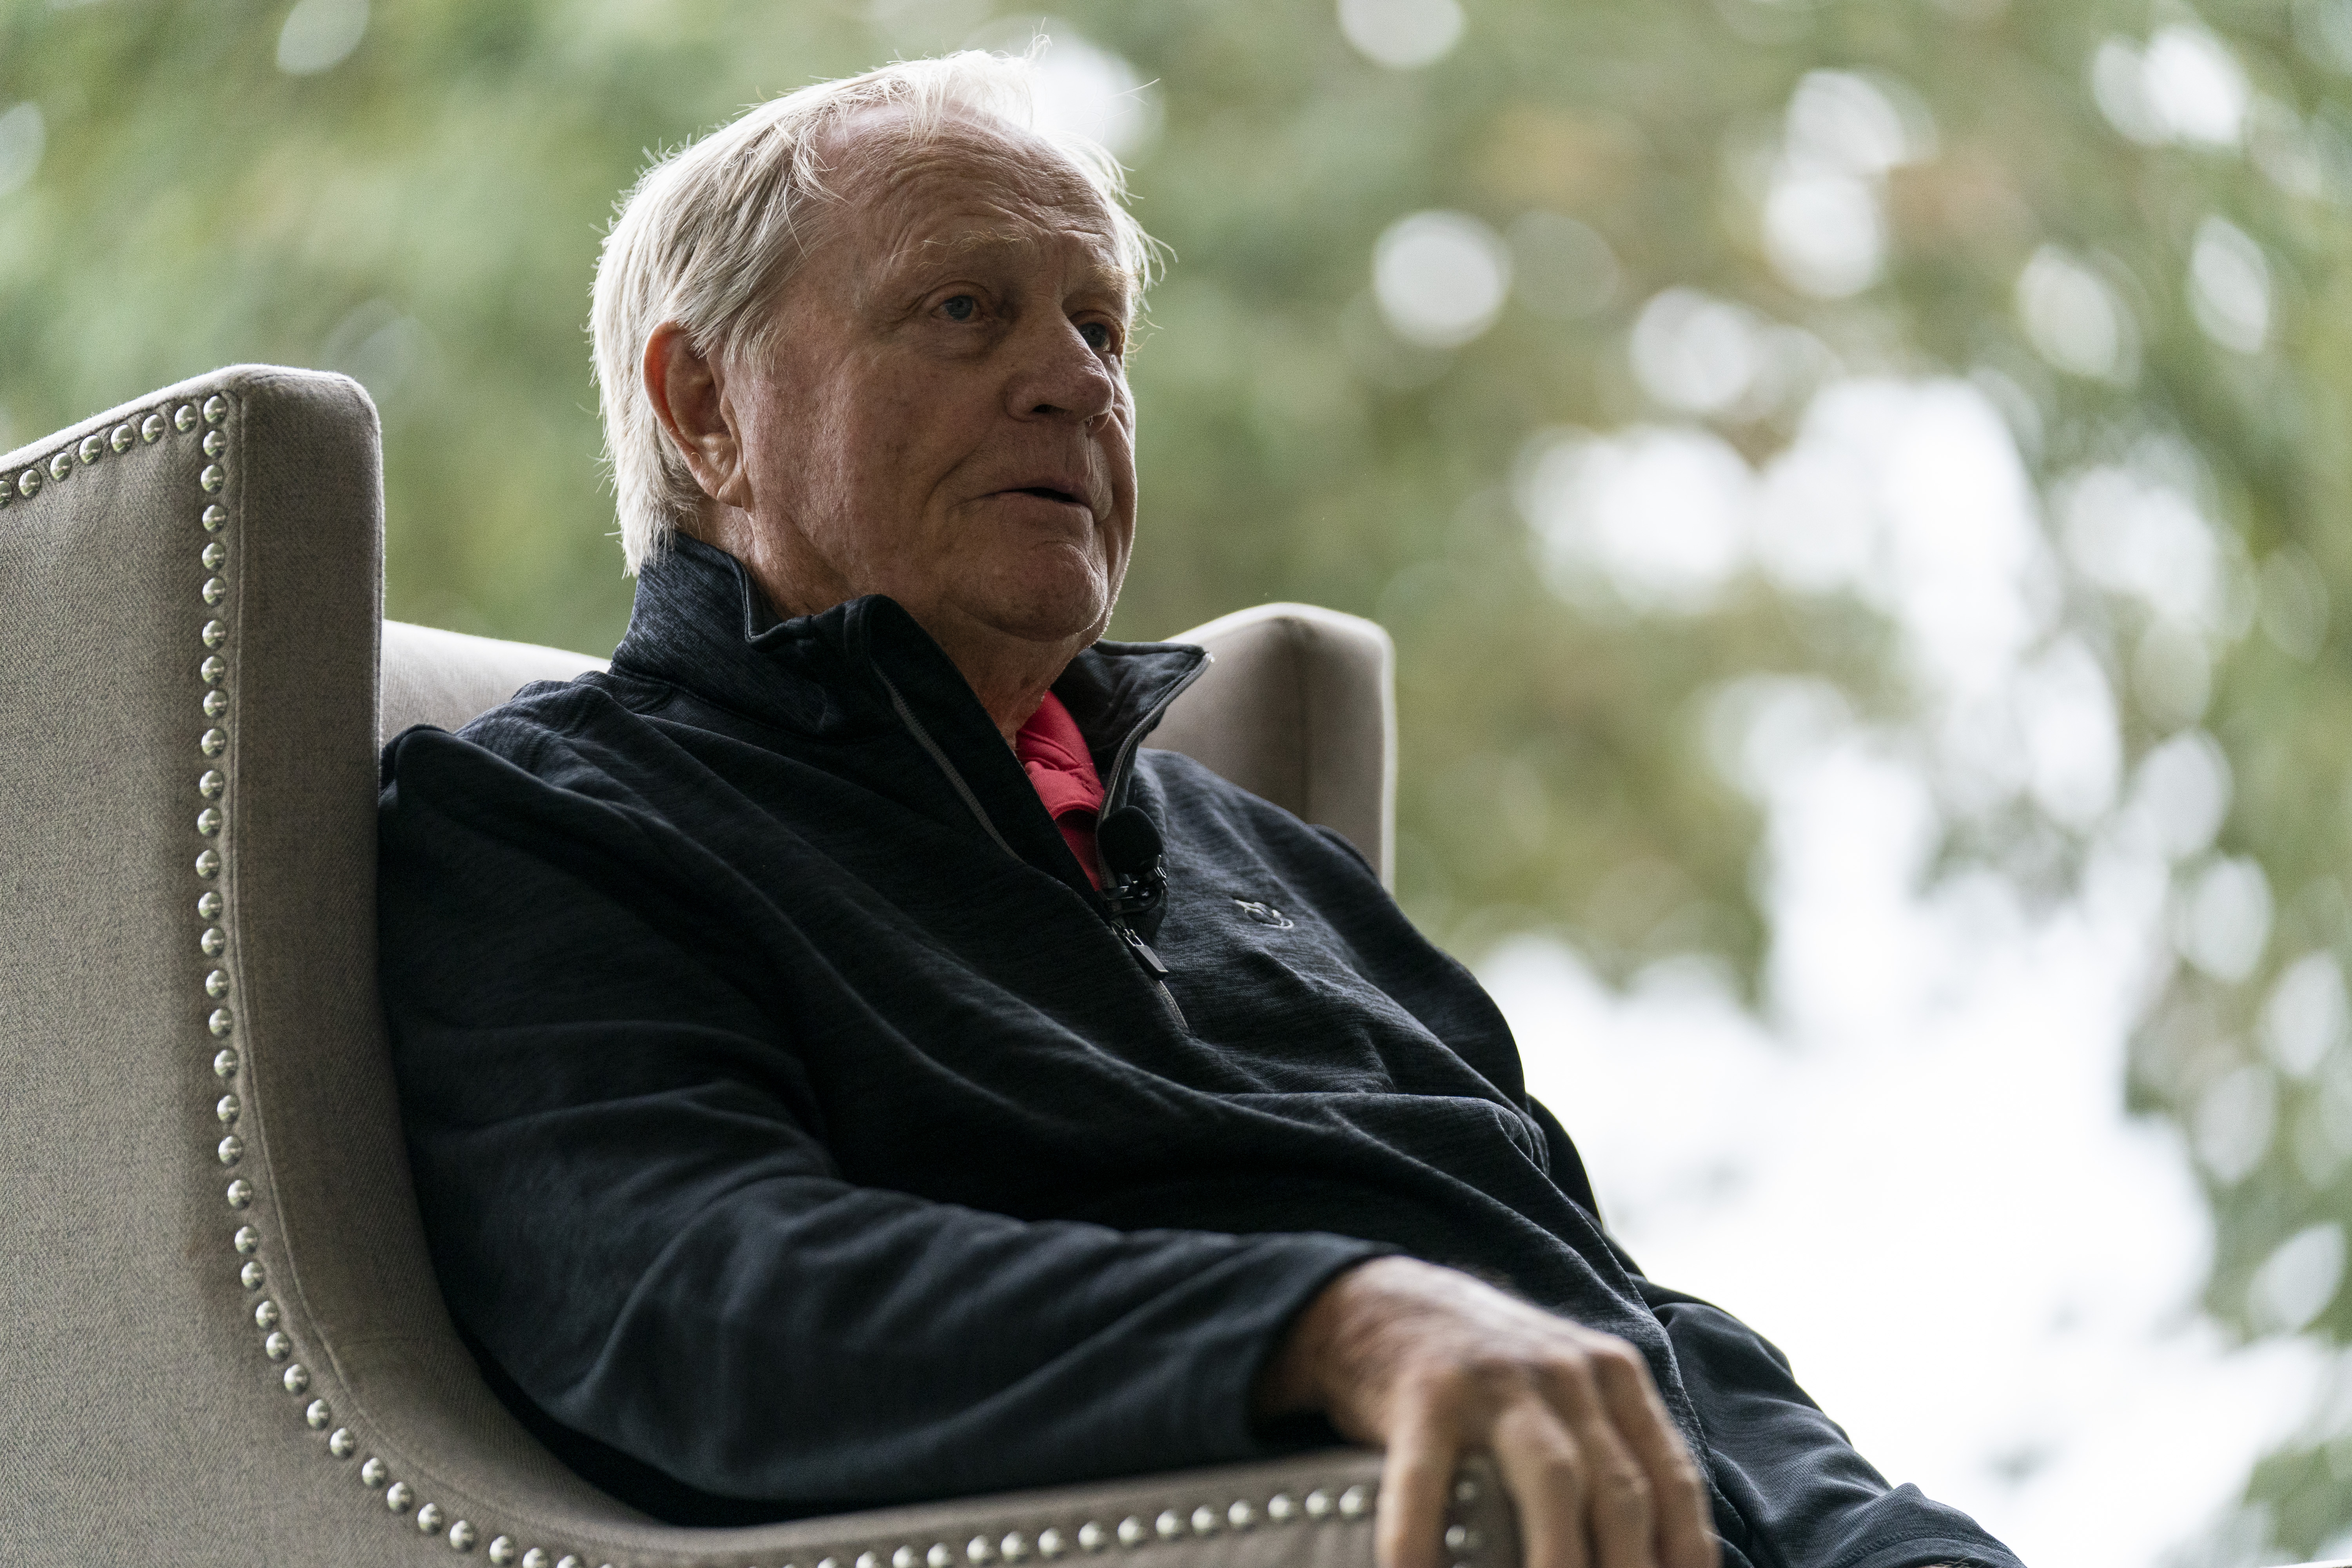 Jack Nicklaus Gets Reflective as He Approaches 80